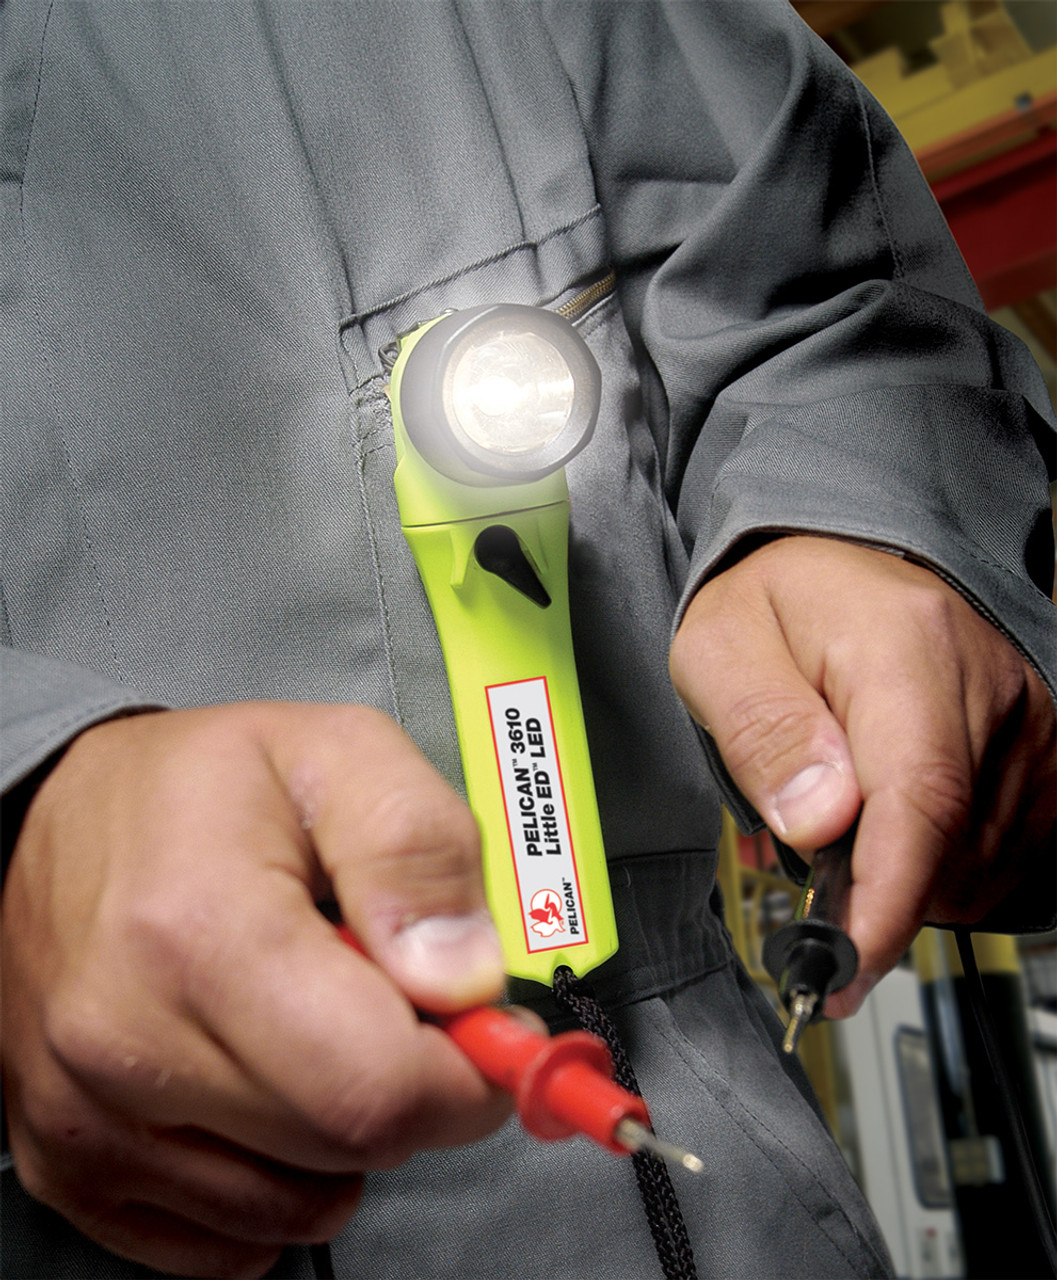 Pelican Little Ed™ Right Angle LED Flashlight, Available in High Visibility Yellow or Black 3610